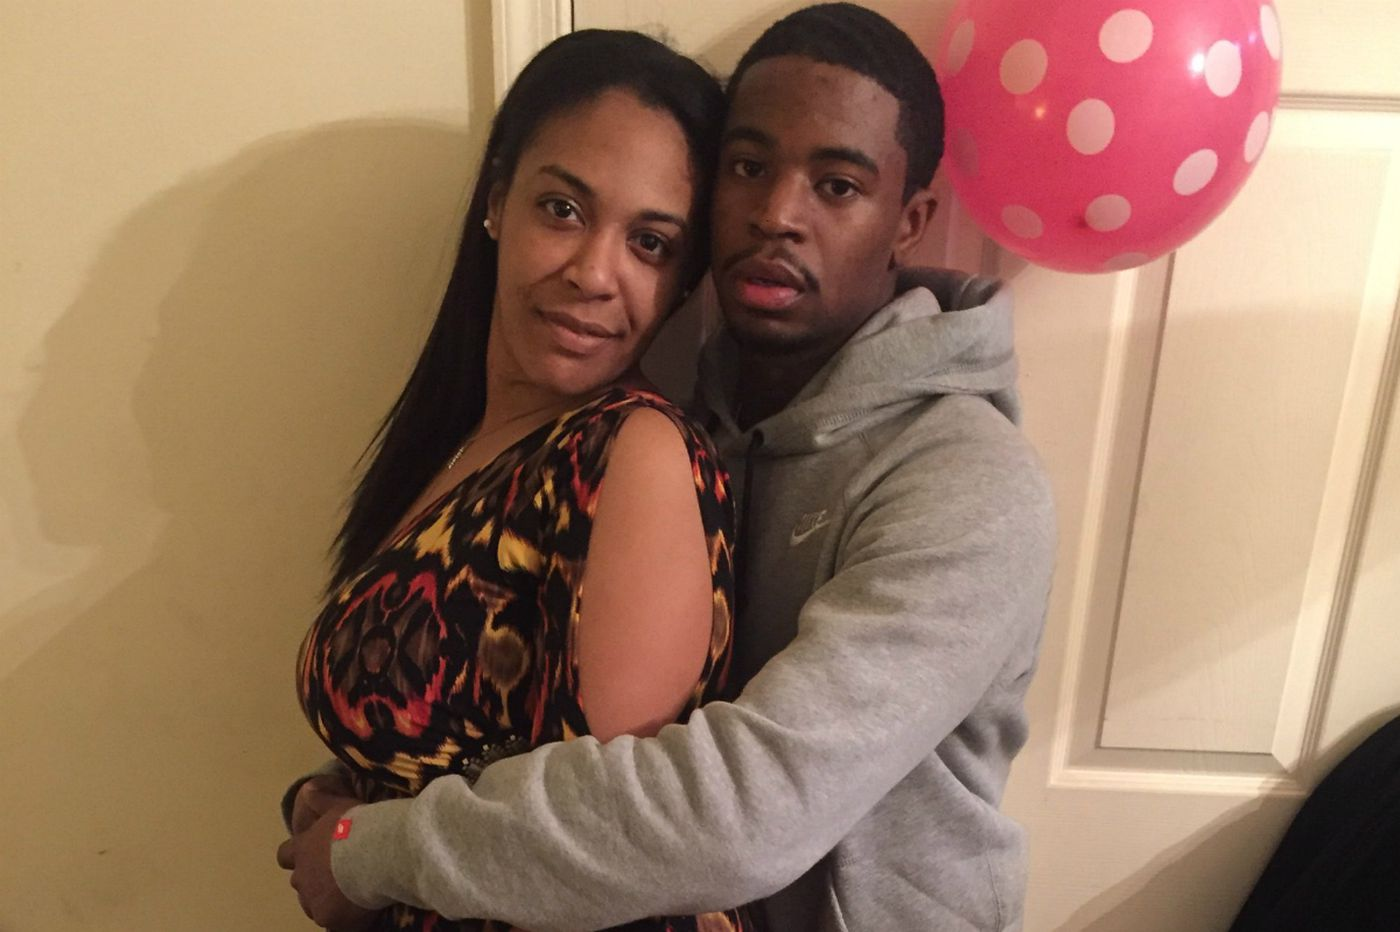 6 months after Philly police shot unarmed man, widow still seeks answers